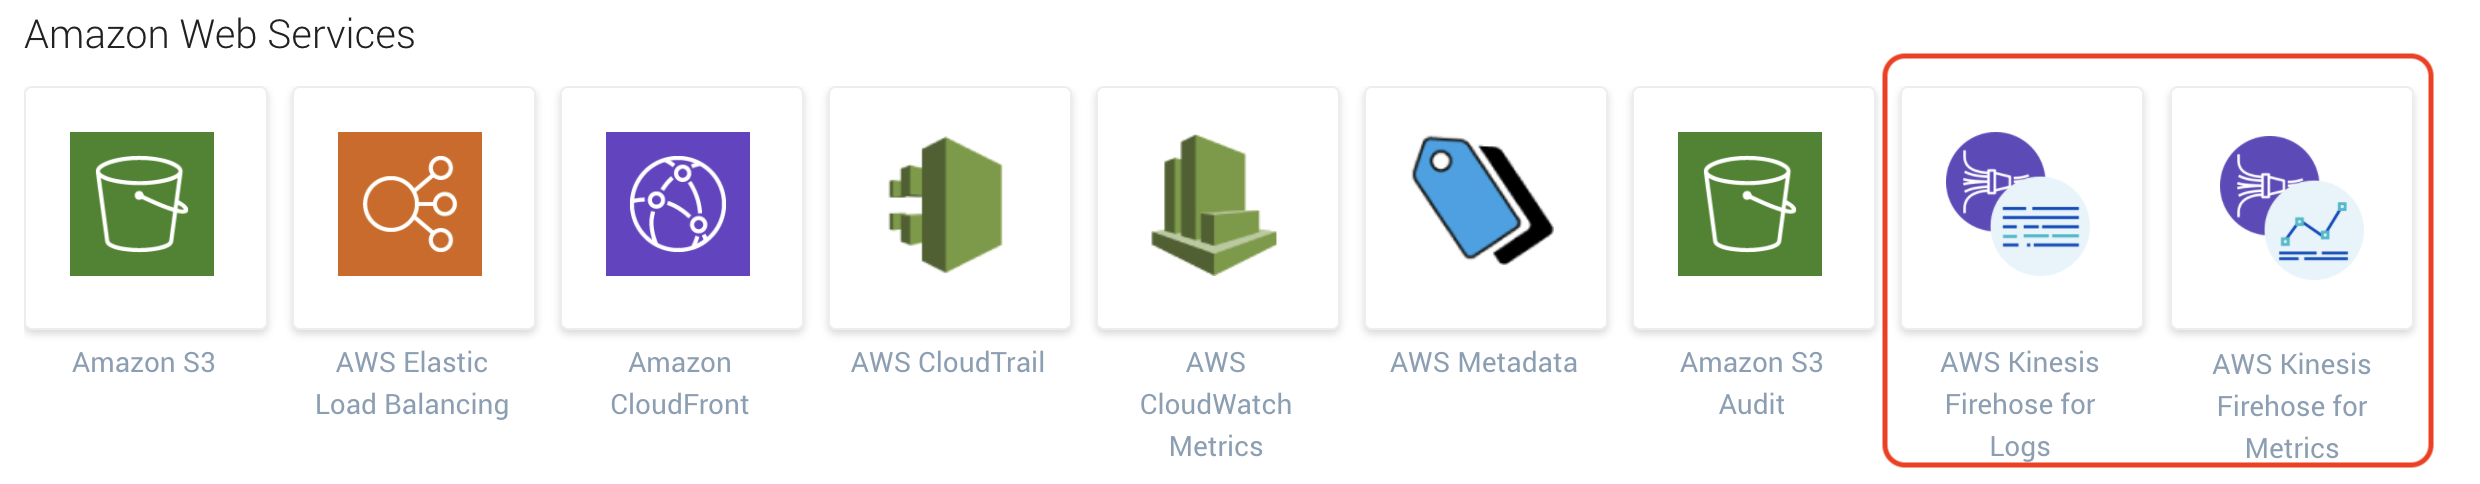 New AWS Kinesis Data Firehose integrations for streaming CloudWatch Logs and Metrics